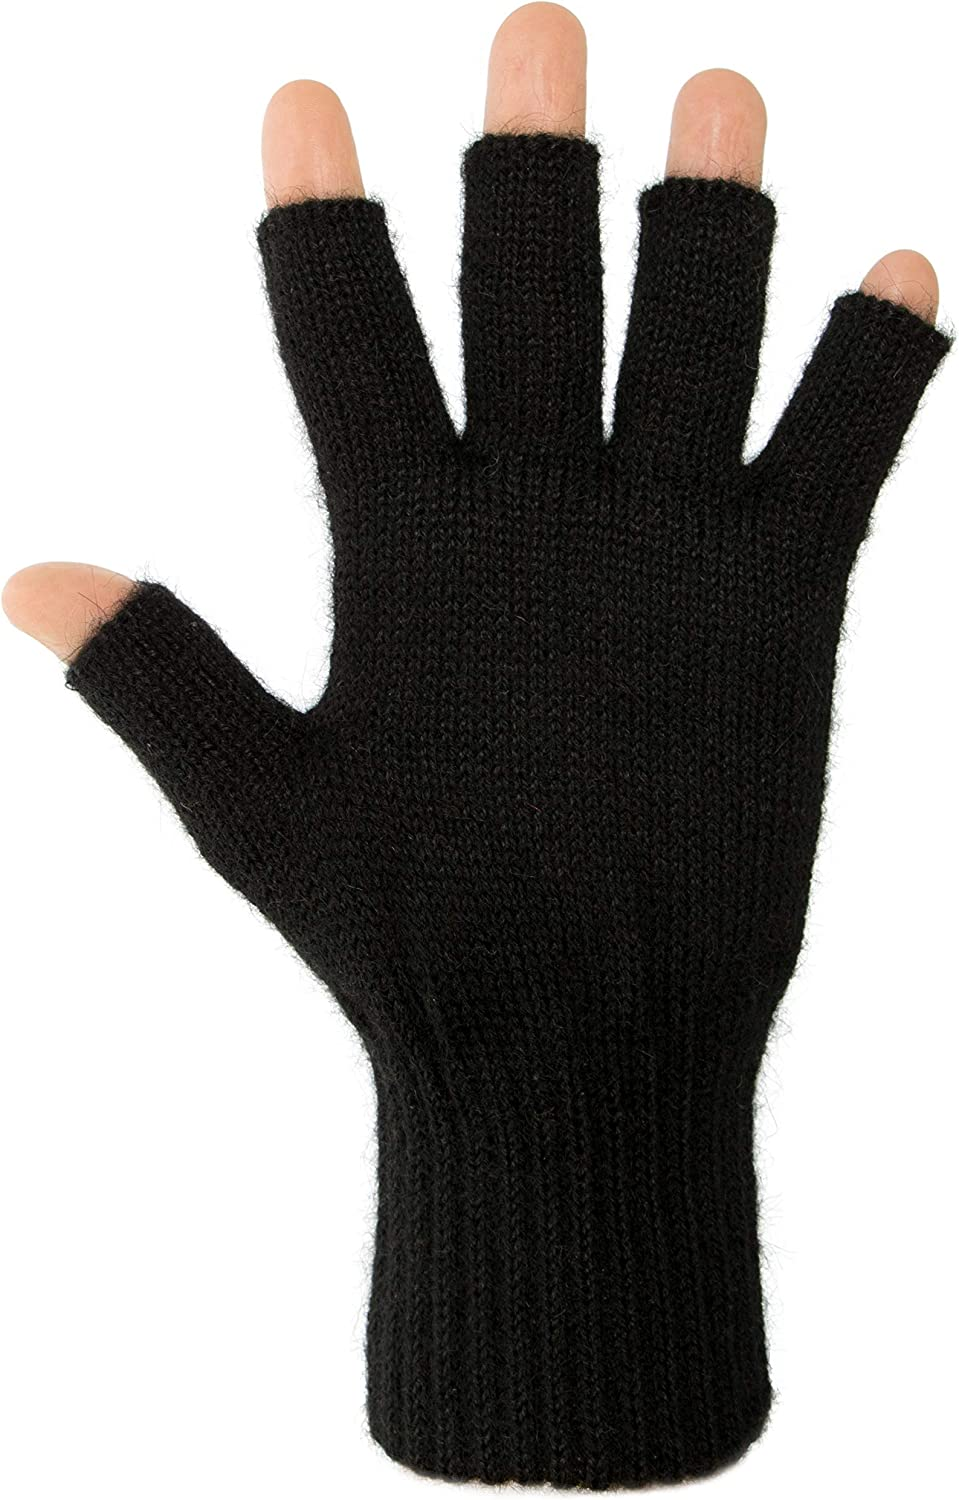 Darn Warm Alpaca Fingerless Gloves - Best Natural Solution for Cold Hands for Women and Men